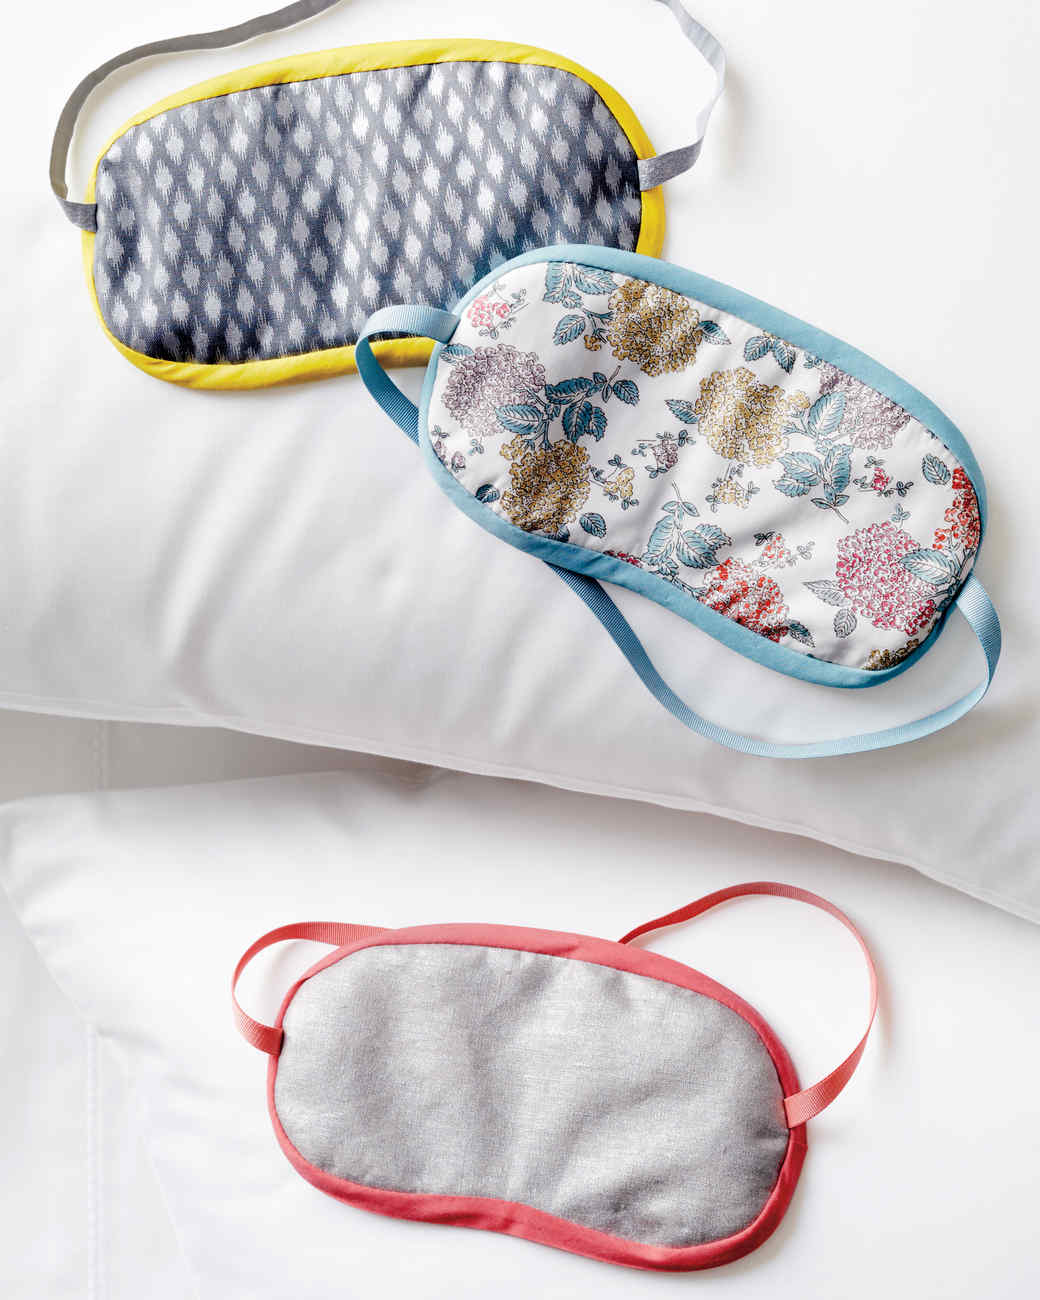 How to Make Eye Mask in a Few Minutes advise